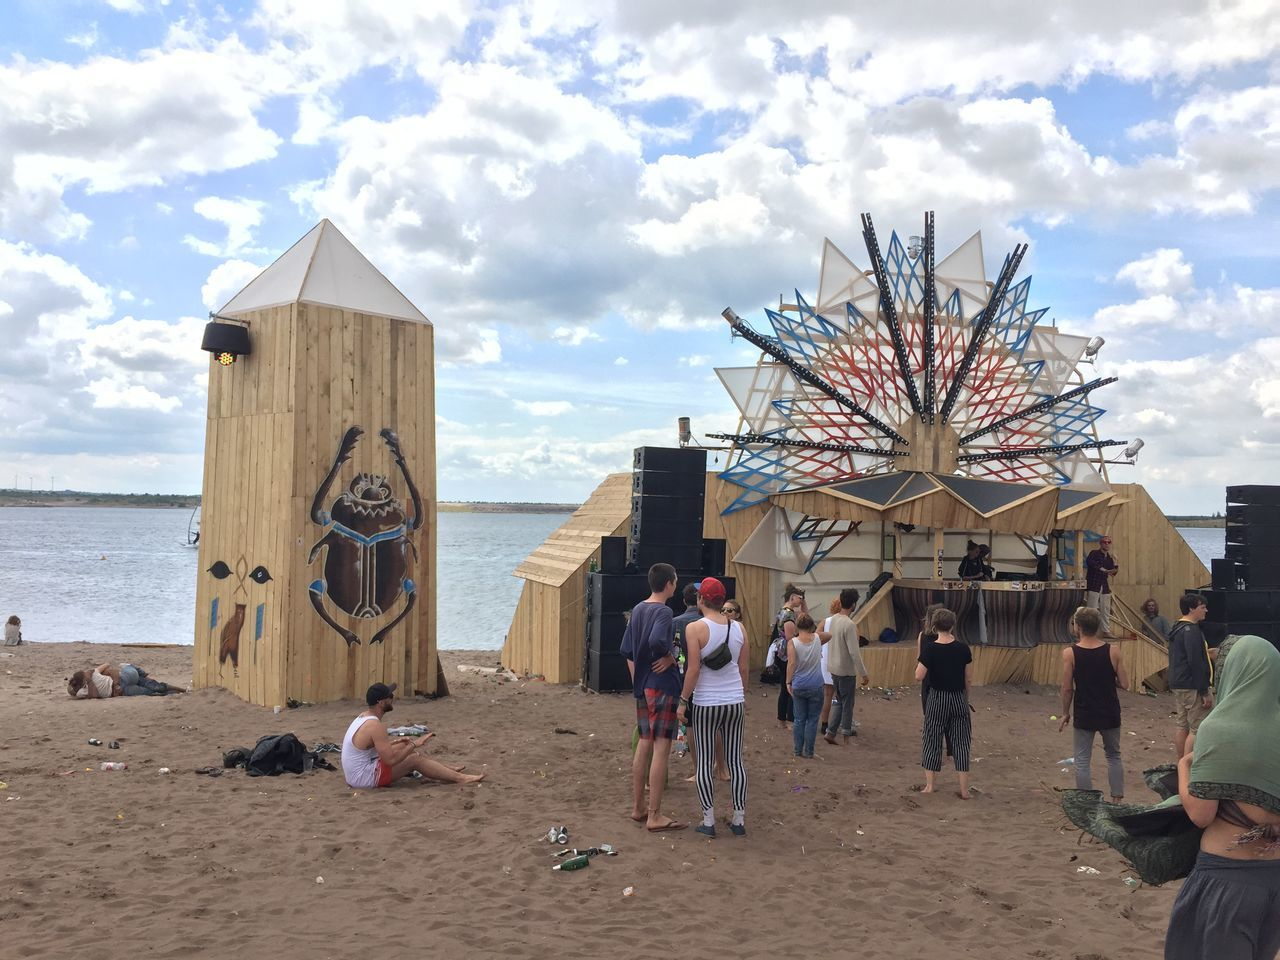 Beach Bergheider See Cloudy Day Feel Festival 2016 Festival Happy Party People Sunny